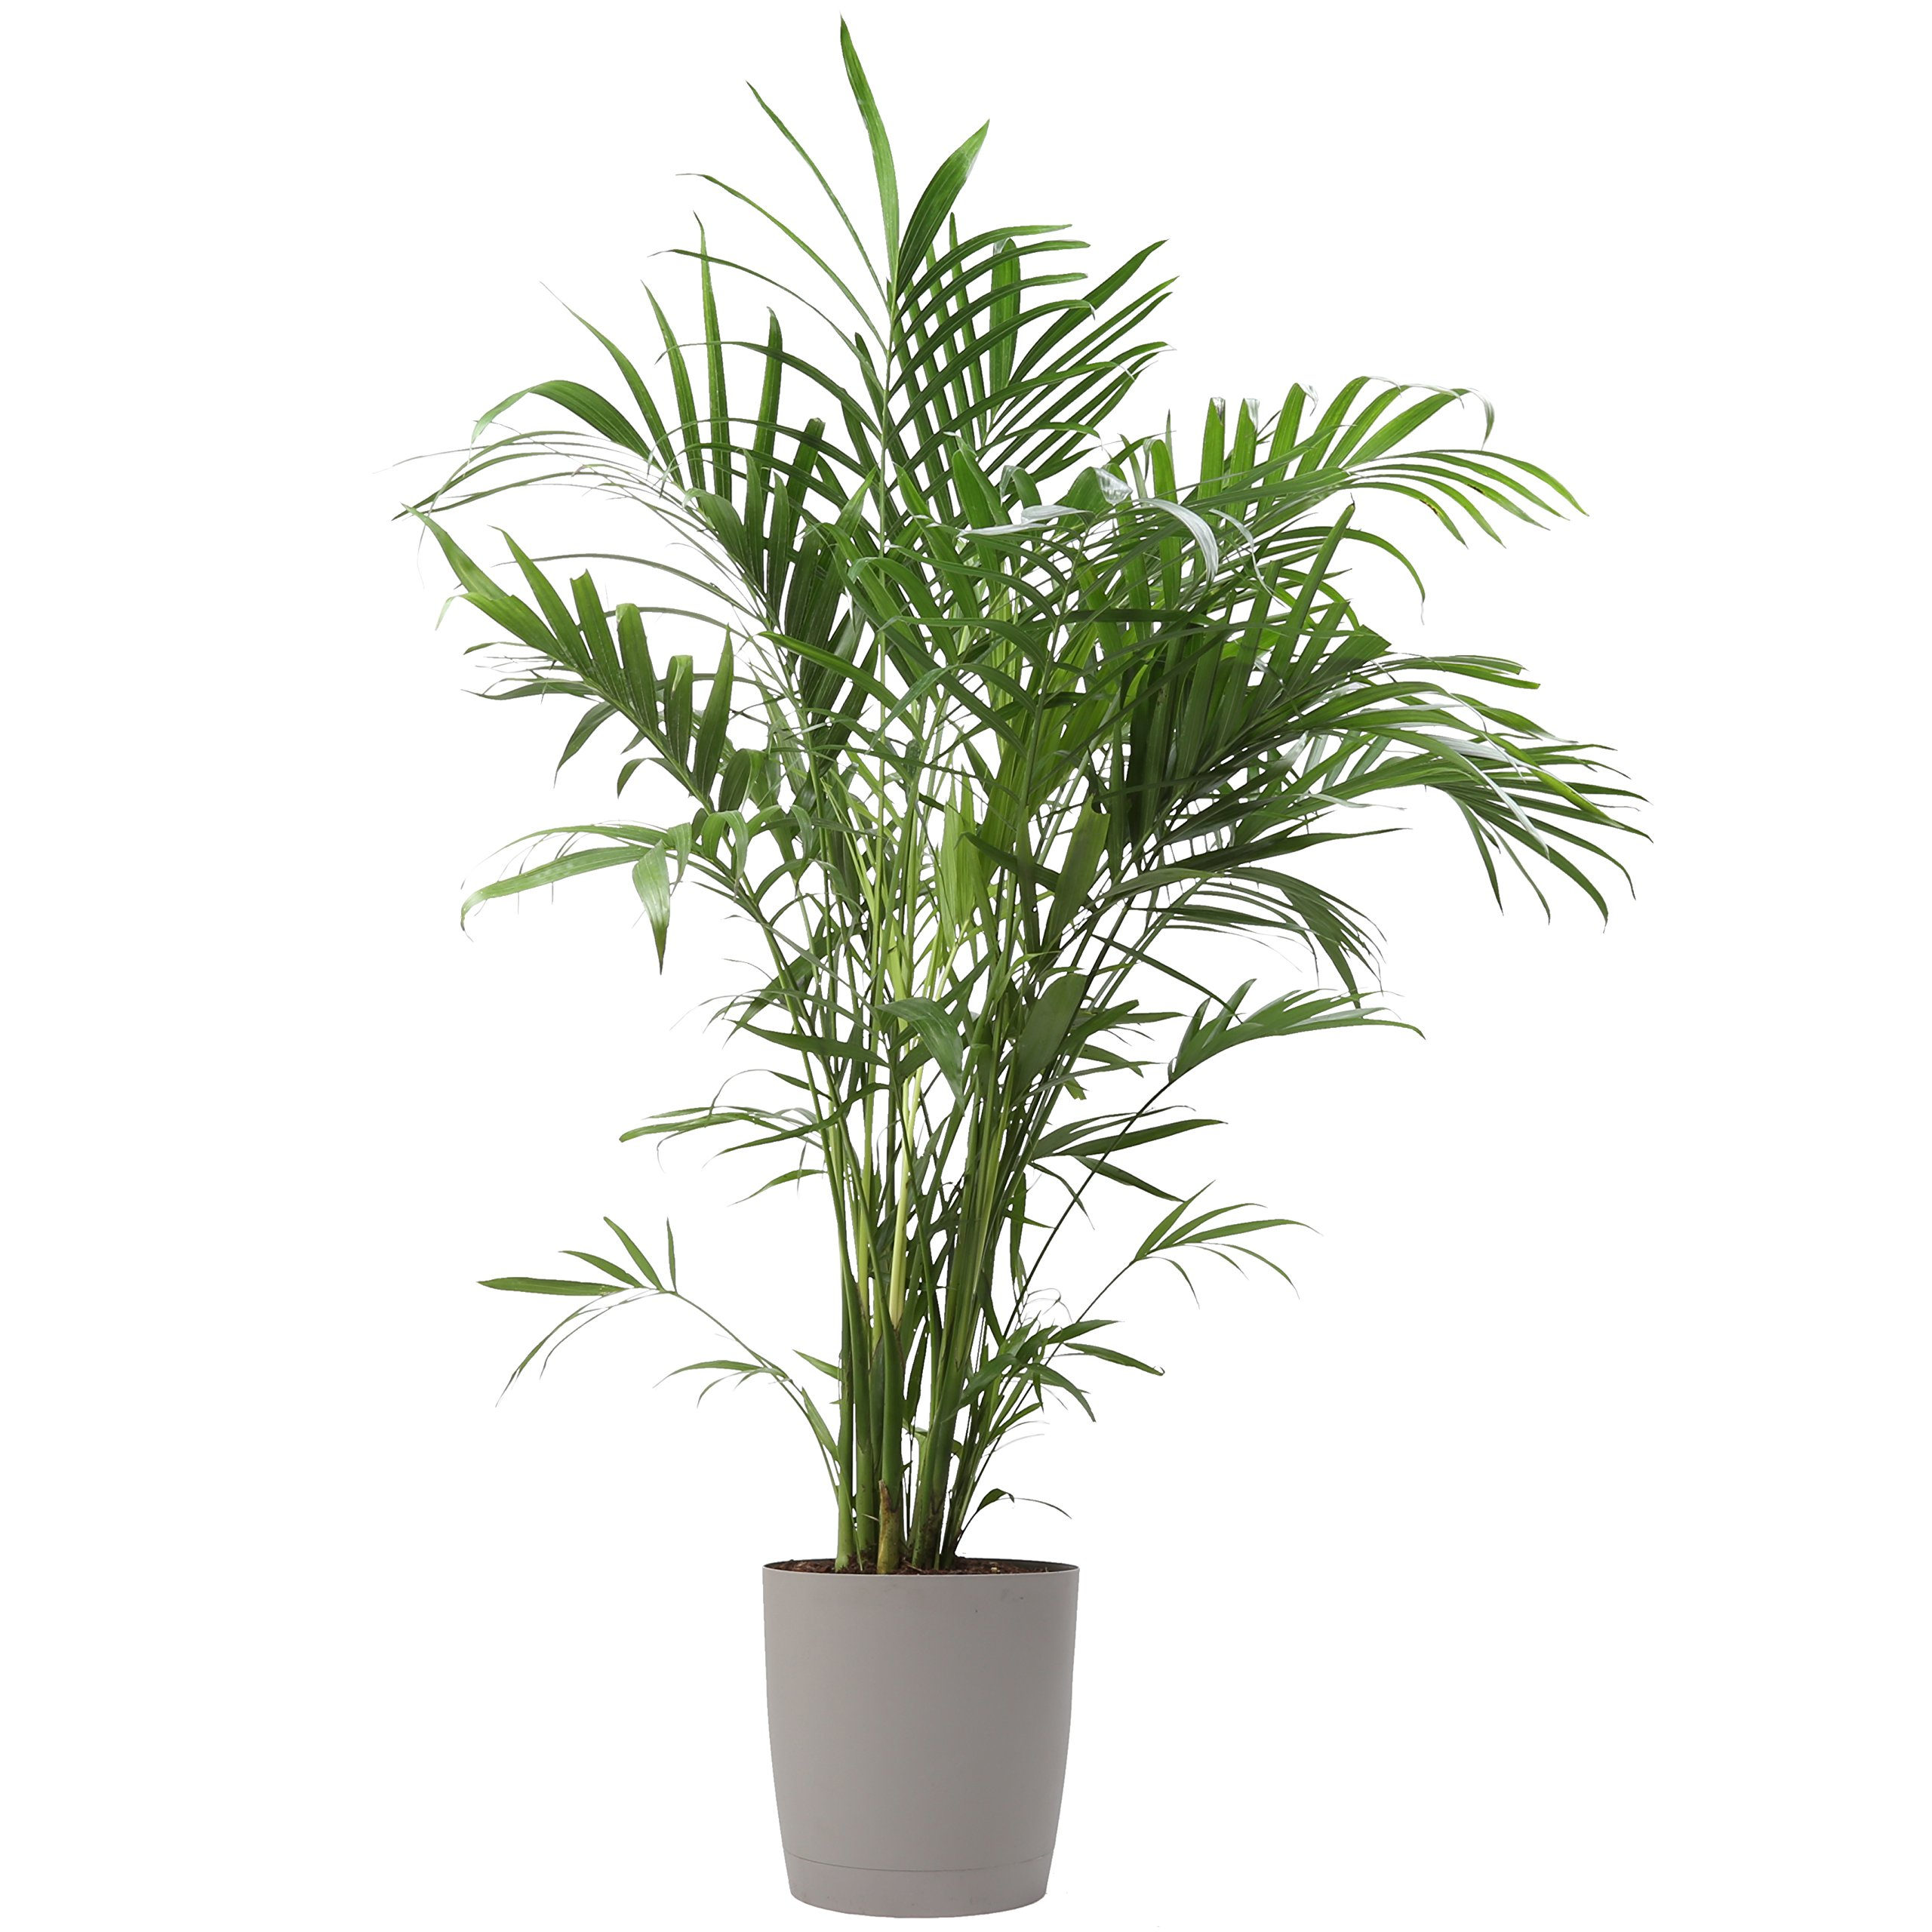 Costa Farms, Premium Live Indoor Cat Palm, Chamaedorea cataractarum, Floor Plant, Gray-Taupe Decorator Pot, Shipped Fresh from Our Farm, Excellent Gift